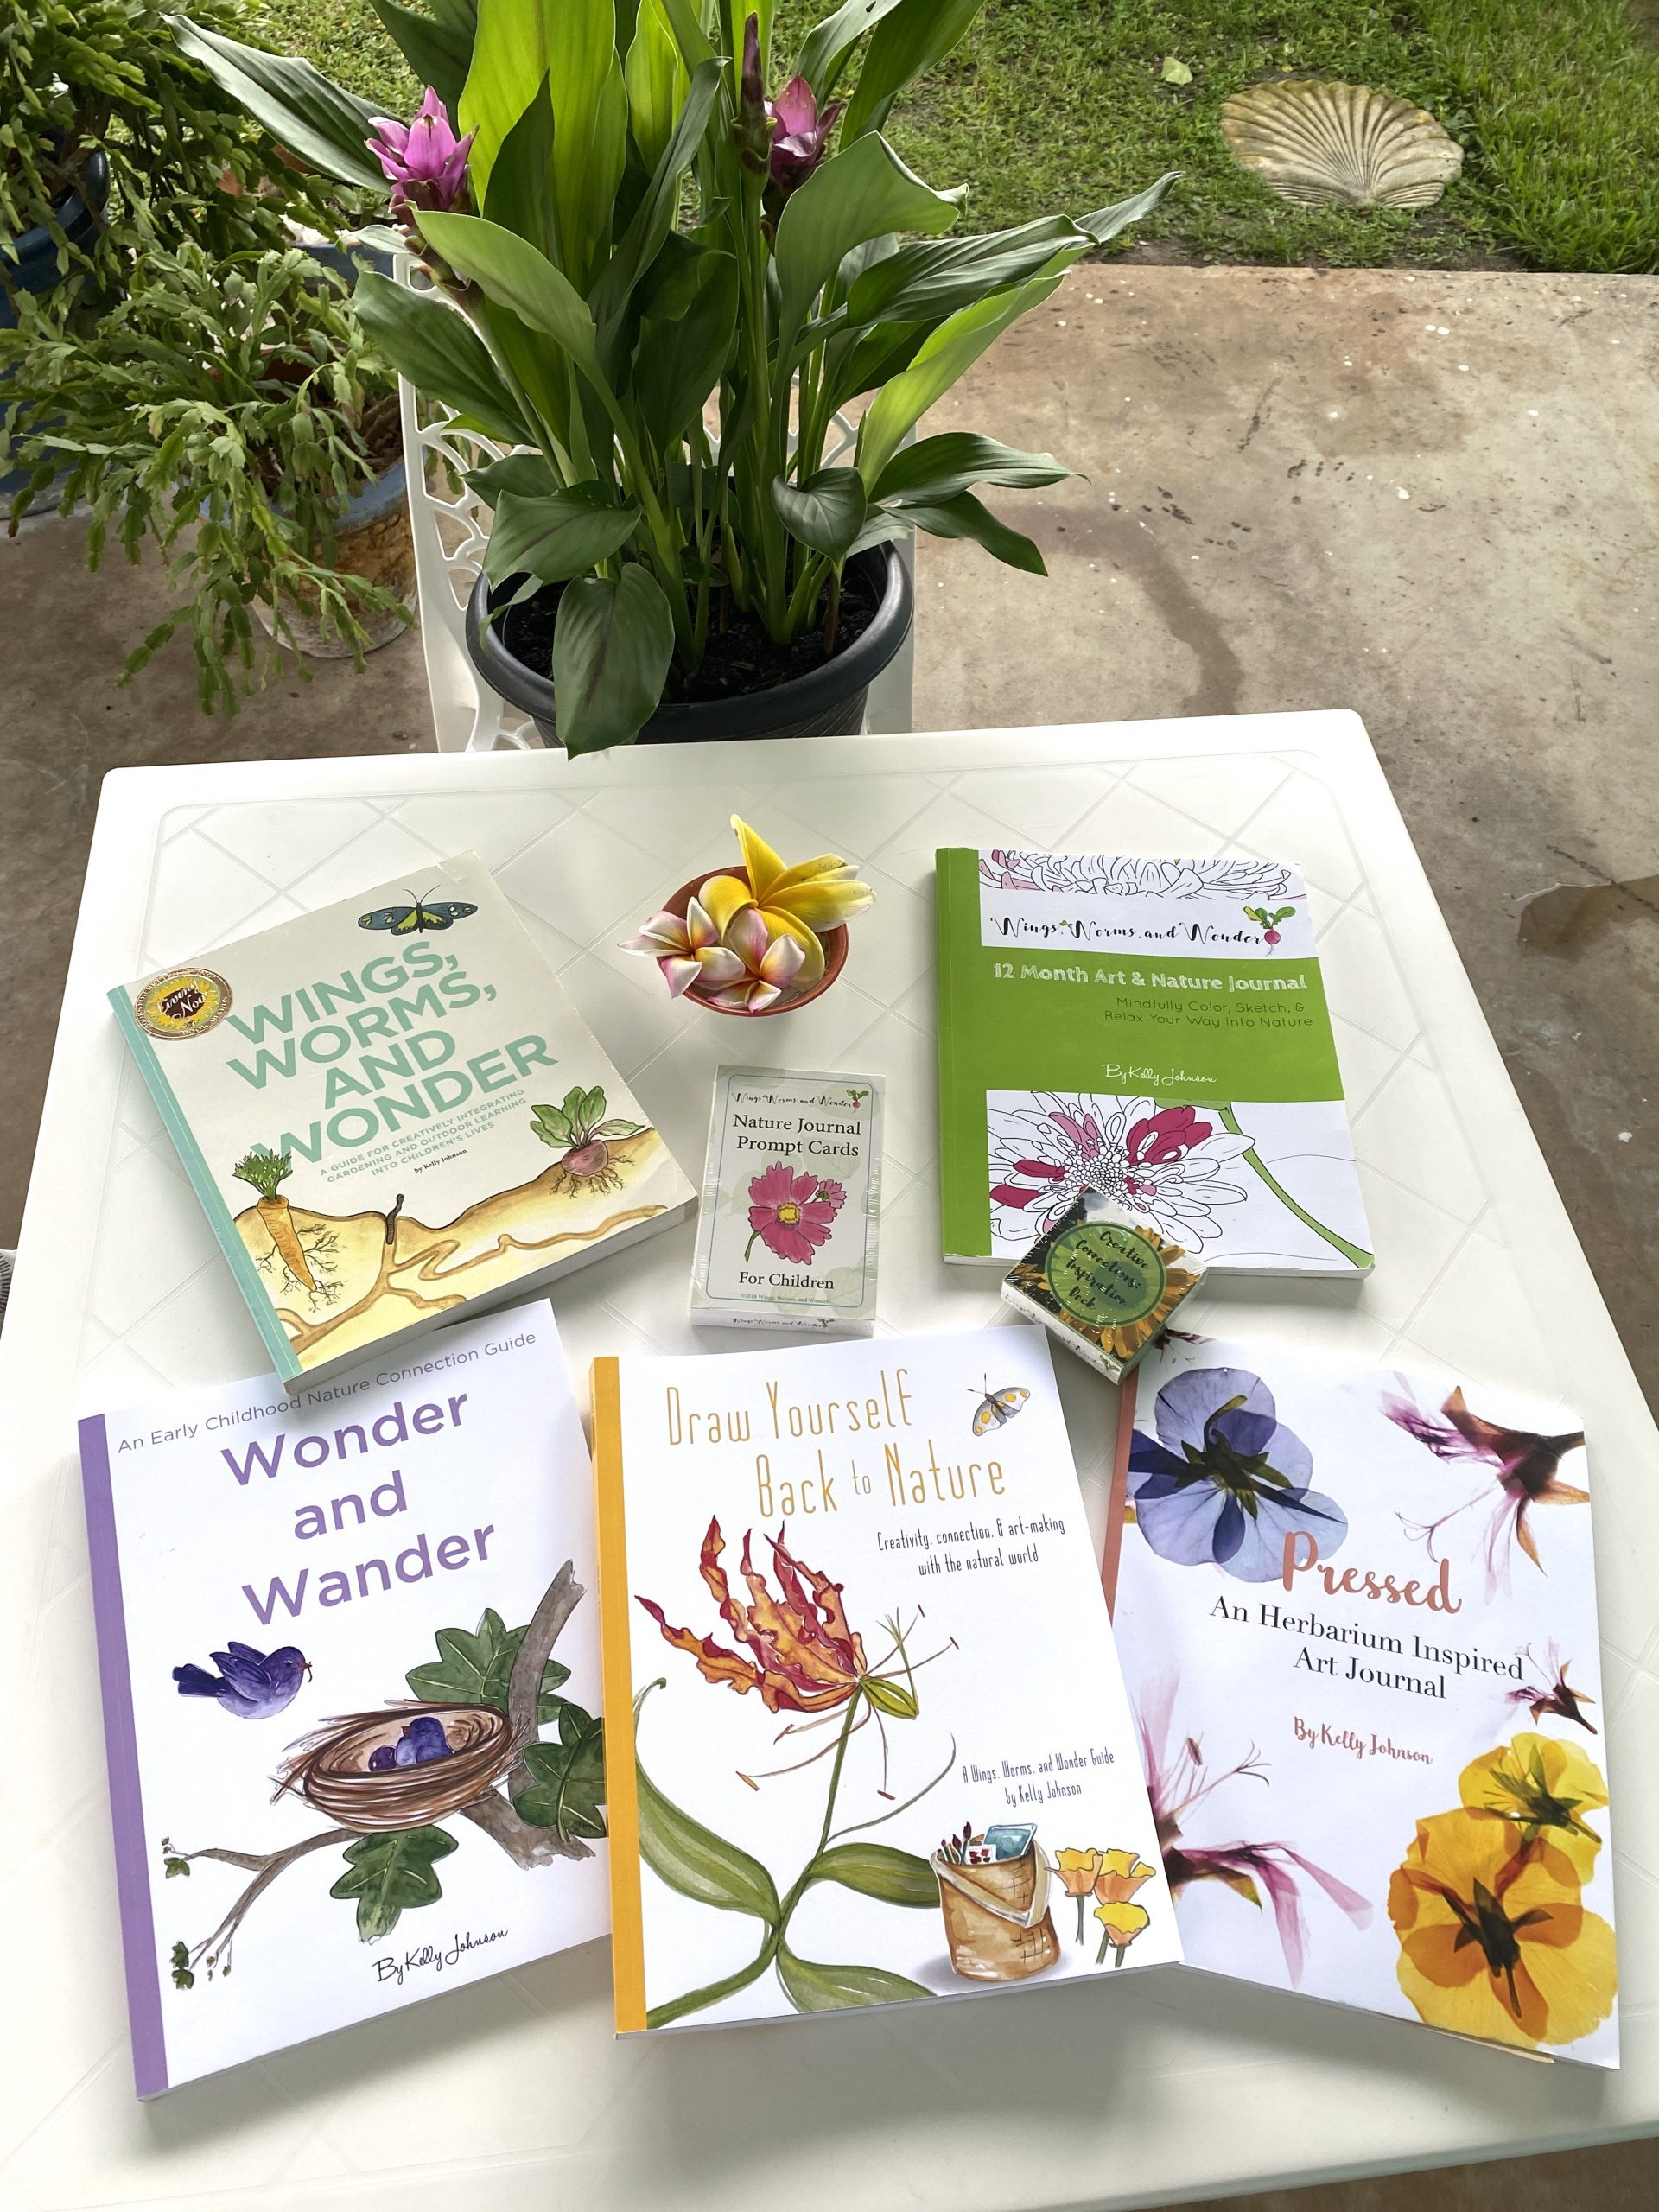 Books, Decks, Paints, Illustrations and more! All nature inspired by Wings, Worms, and Wonder!